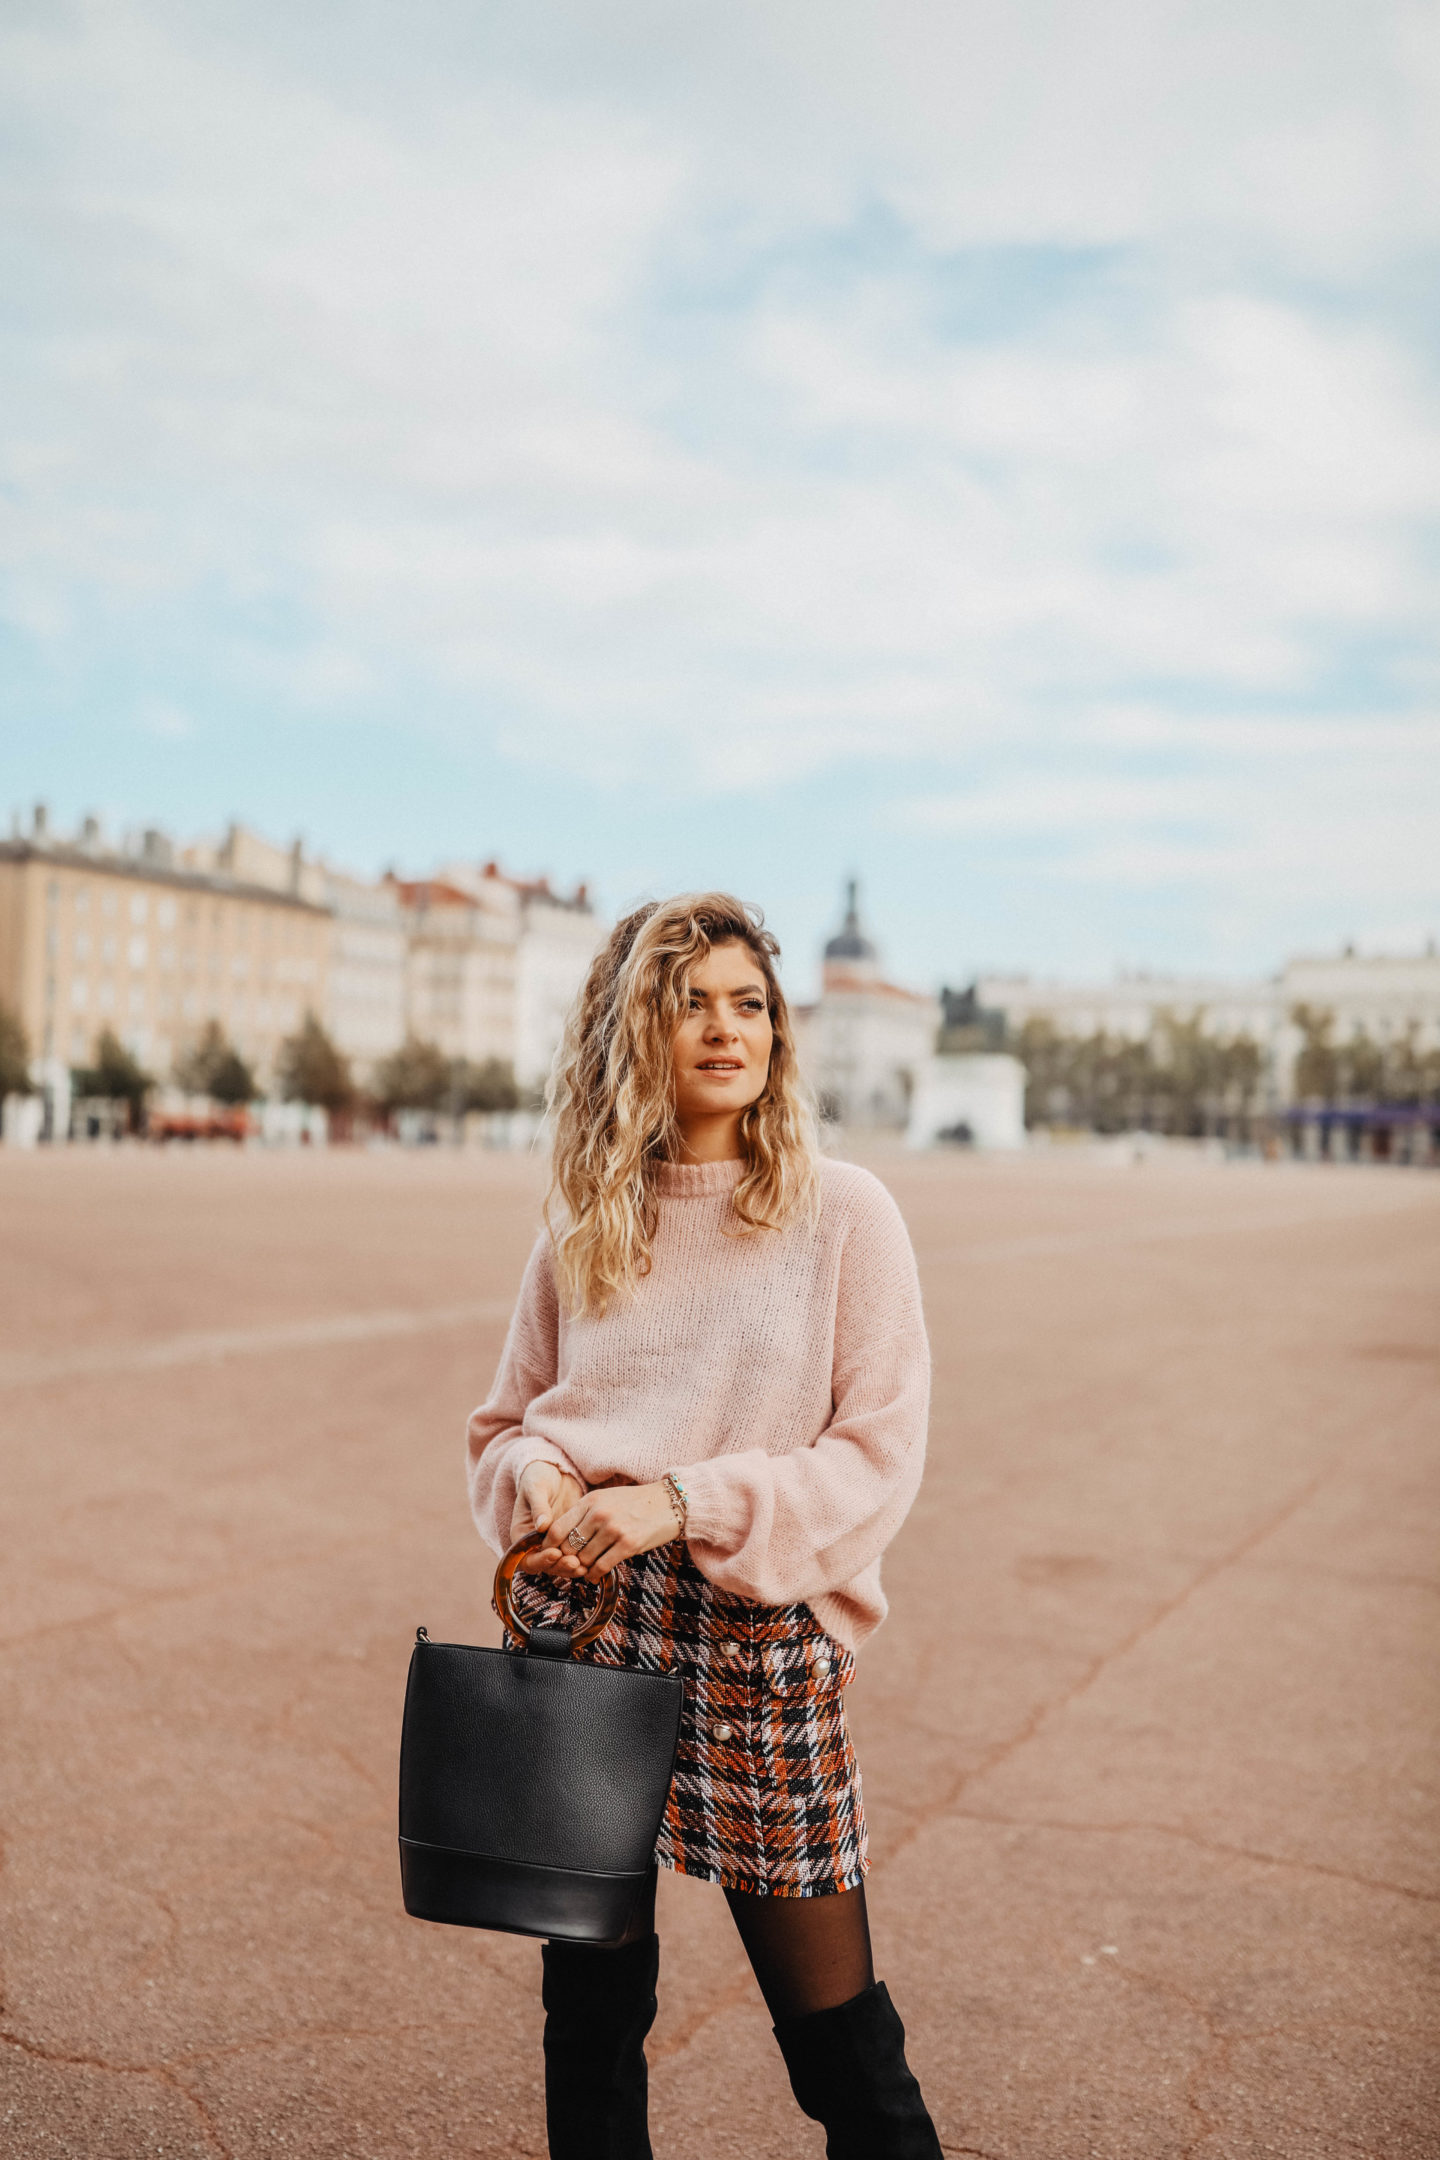 Sac seau NewLook marie and mood blog